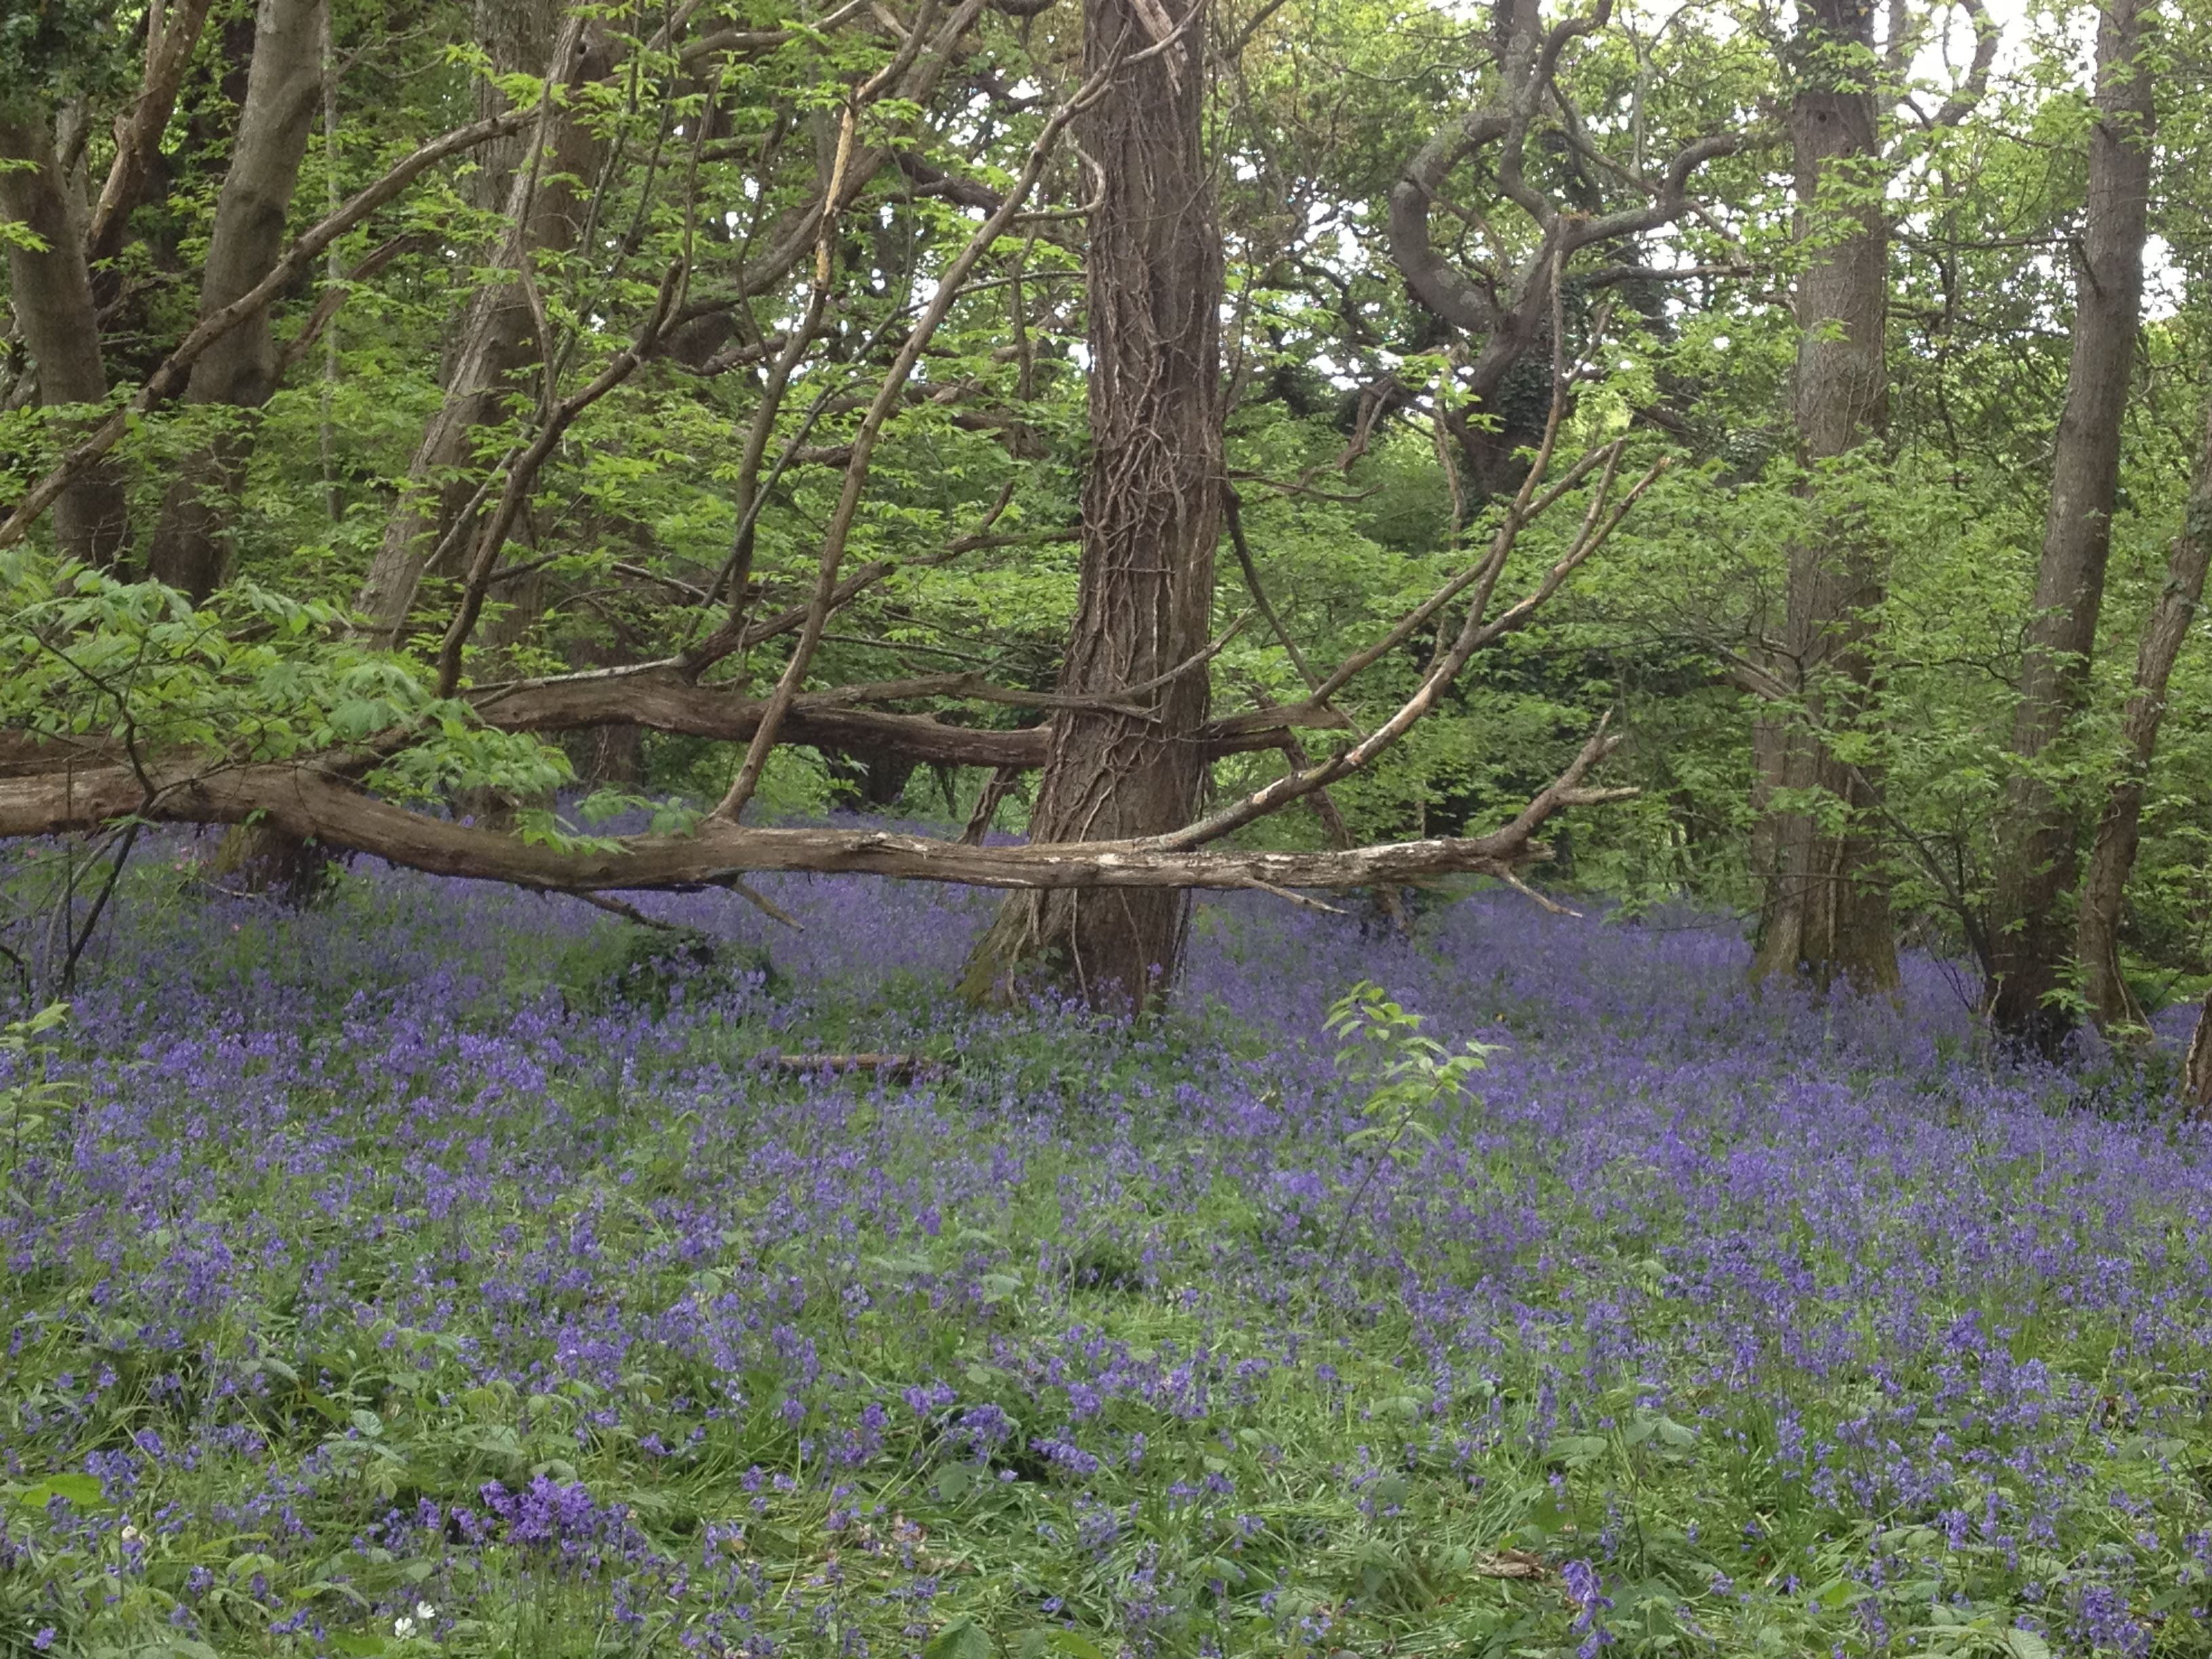 Bluebells in Boarswood, Isle of Wight